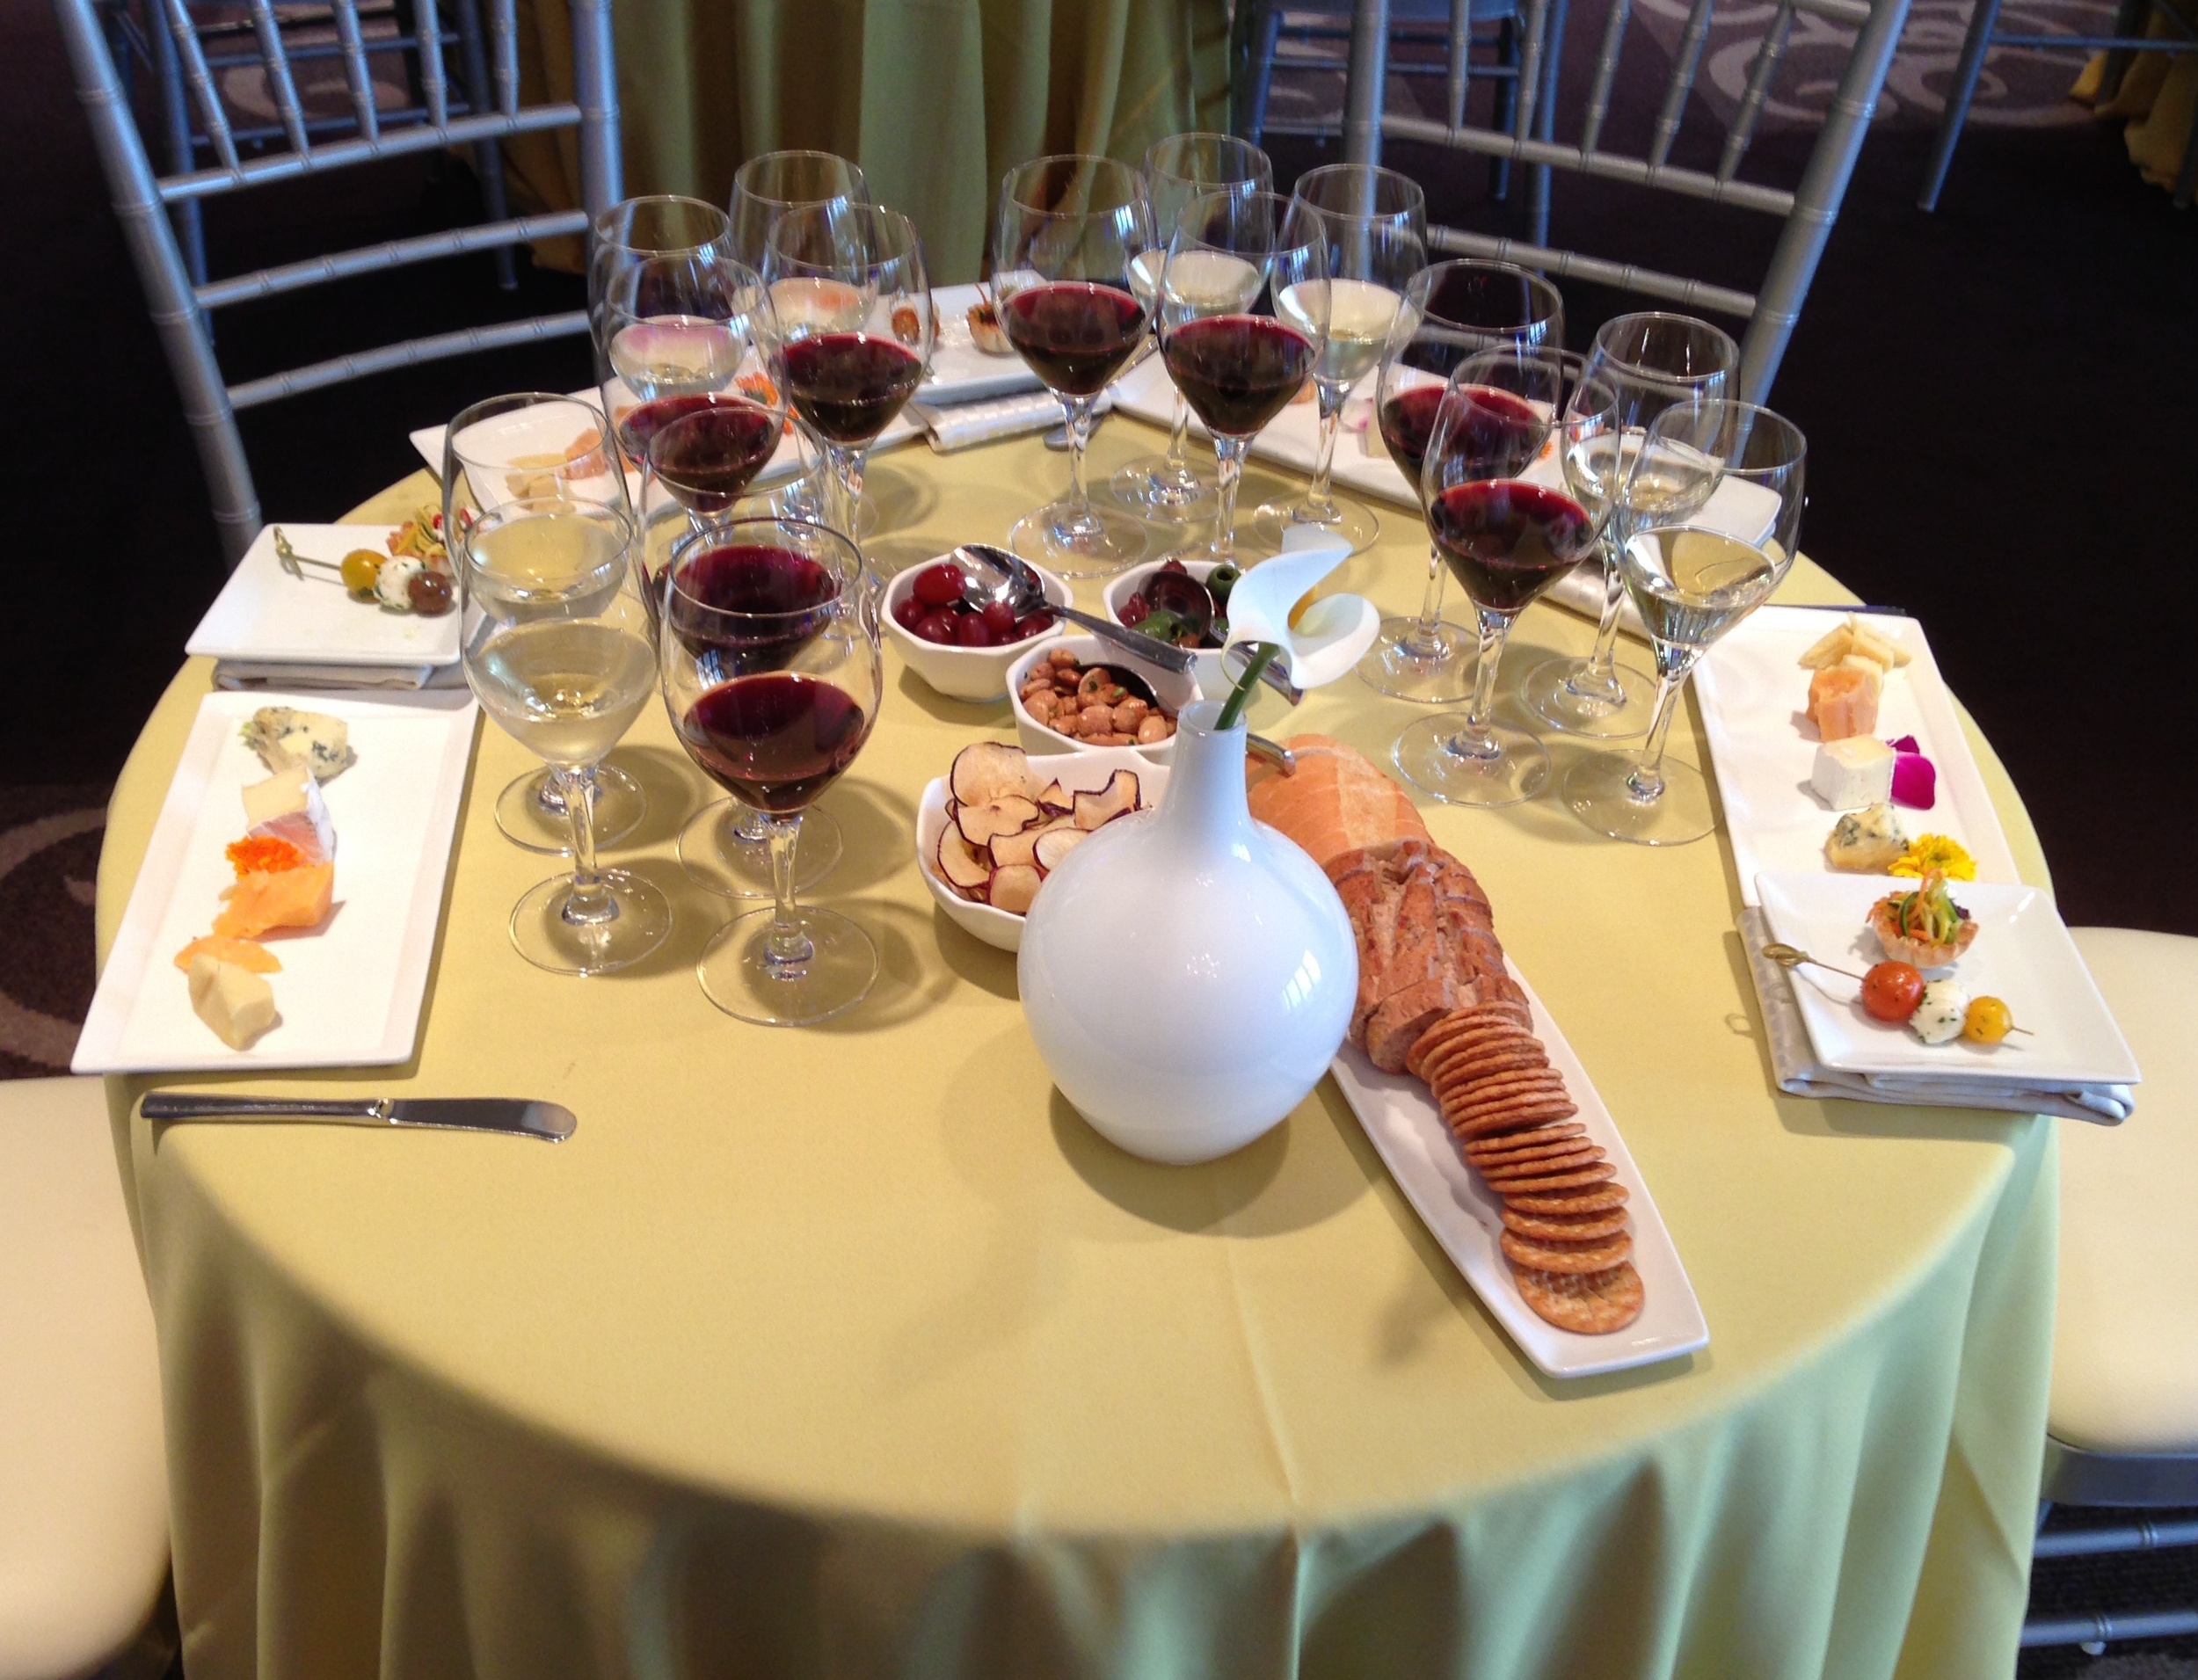 Wine party ideas Denver learn about wine: blind-tasting classes and seminars